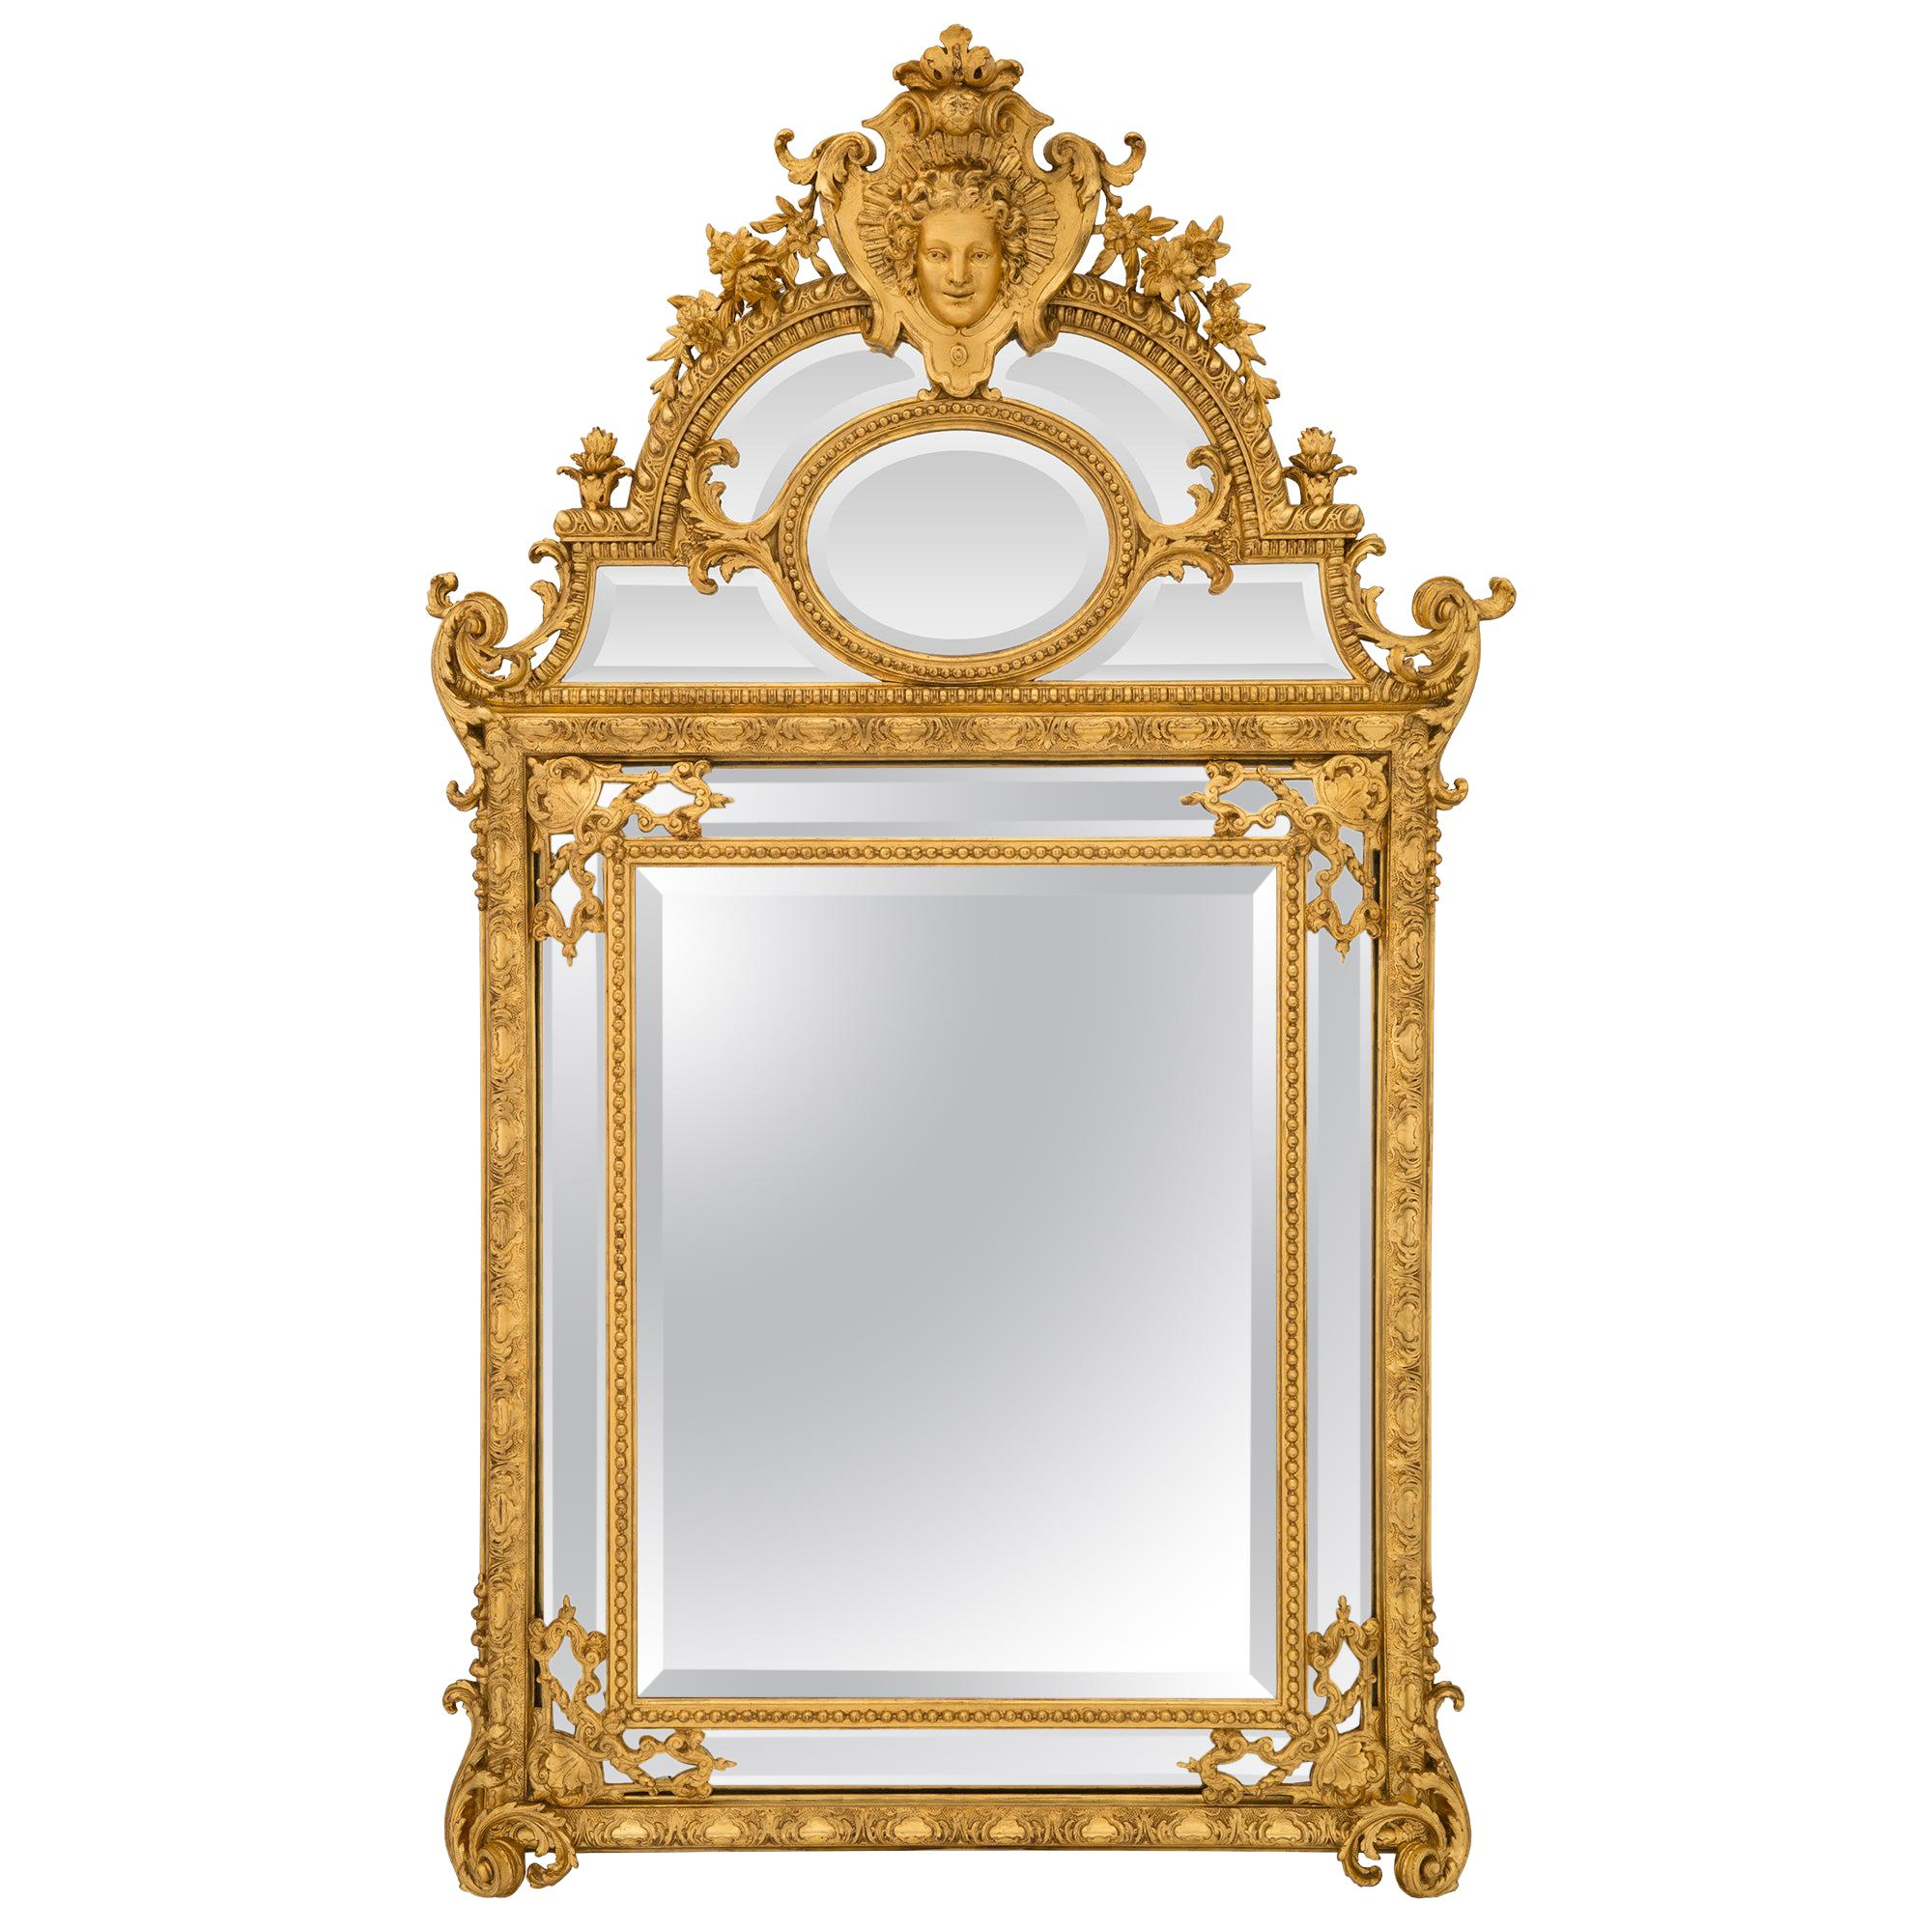 French 19th Century Regence Style Double Framed Giltwood Mirror